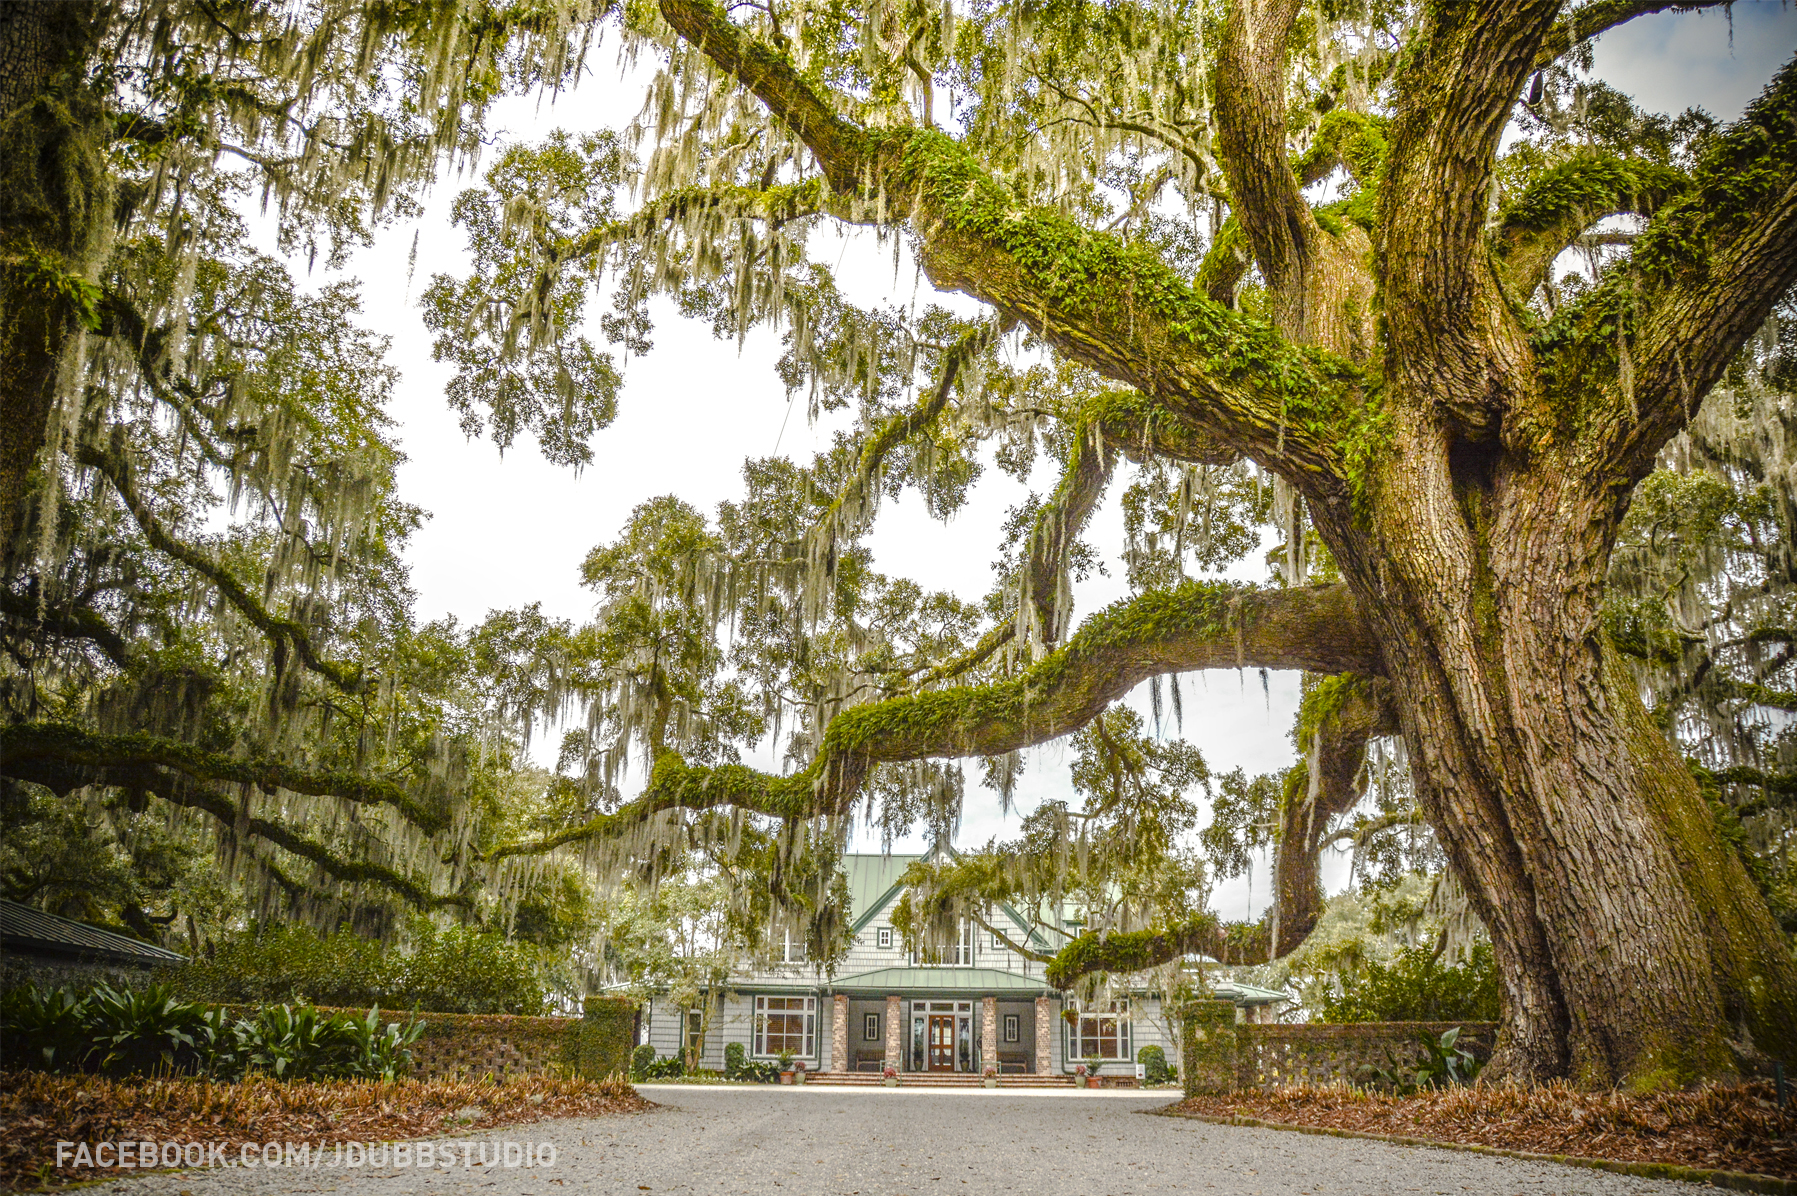 Mackay Point Plantation